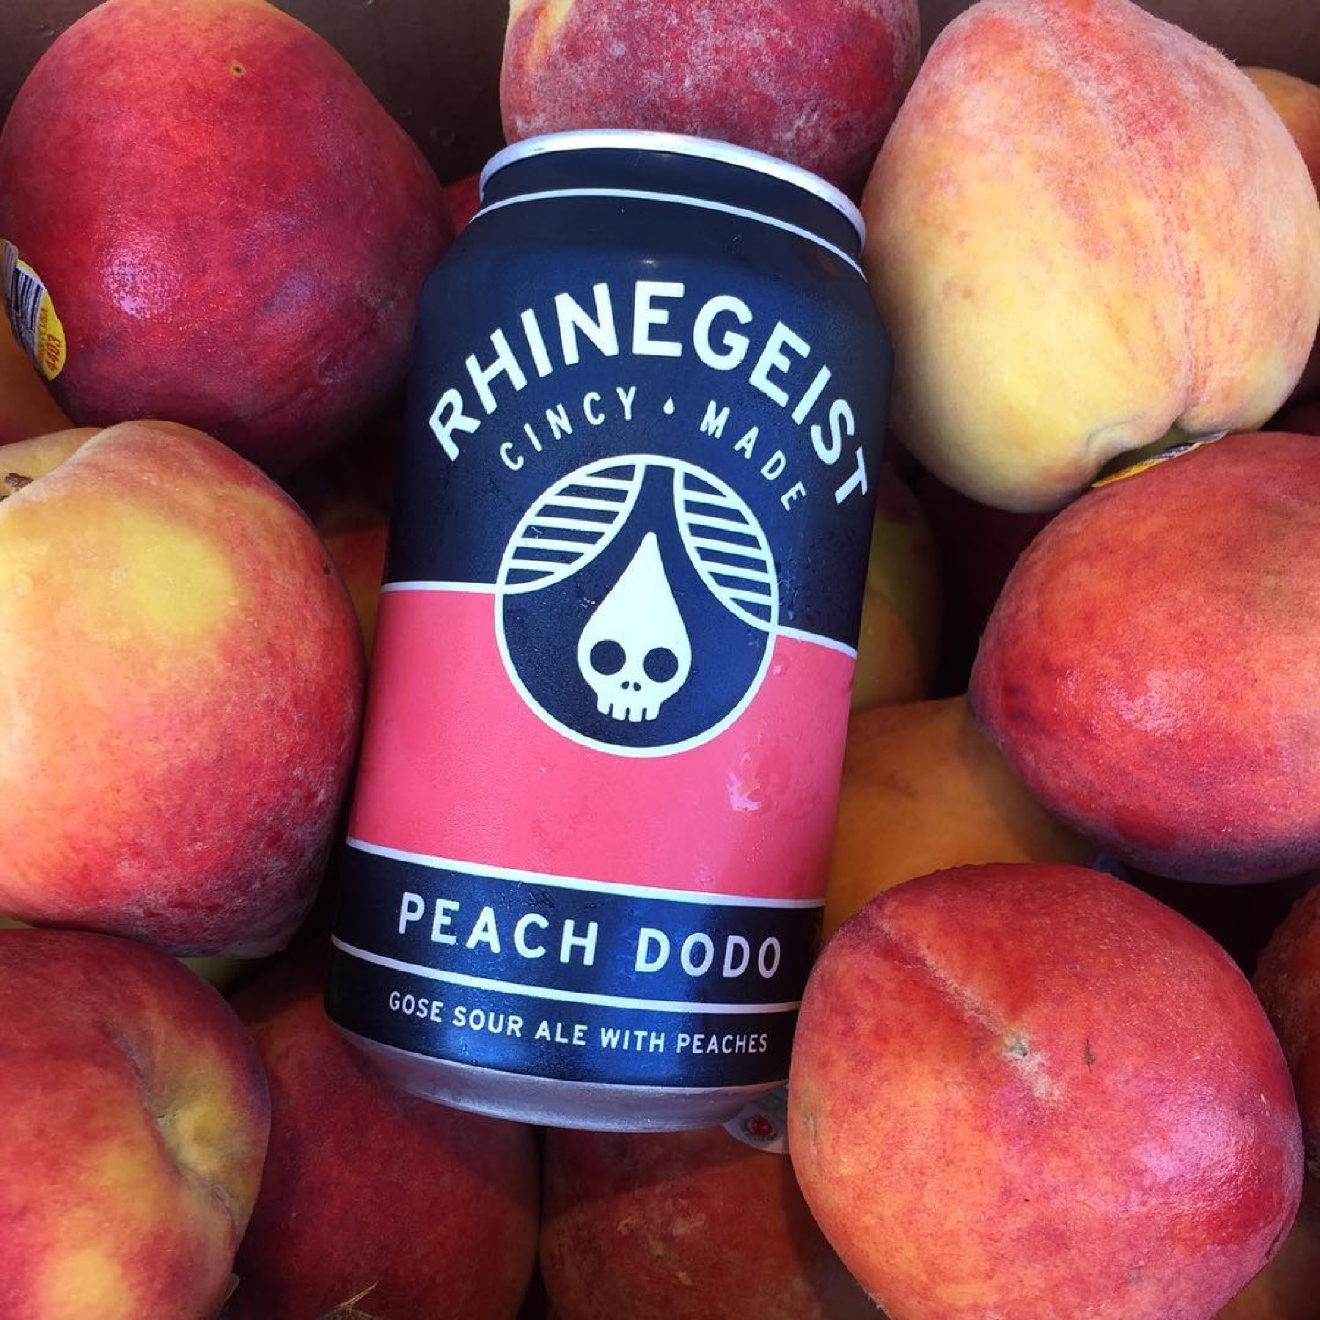 PEACH DODO by Rhinegeist Brewery / Sour and salty, this German gose is perfect for a picnic, but it doesn't come out until June. / Image courtesy of Rhinegeist Brewery // Published: 1.10.17